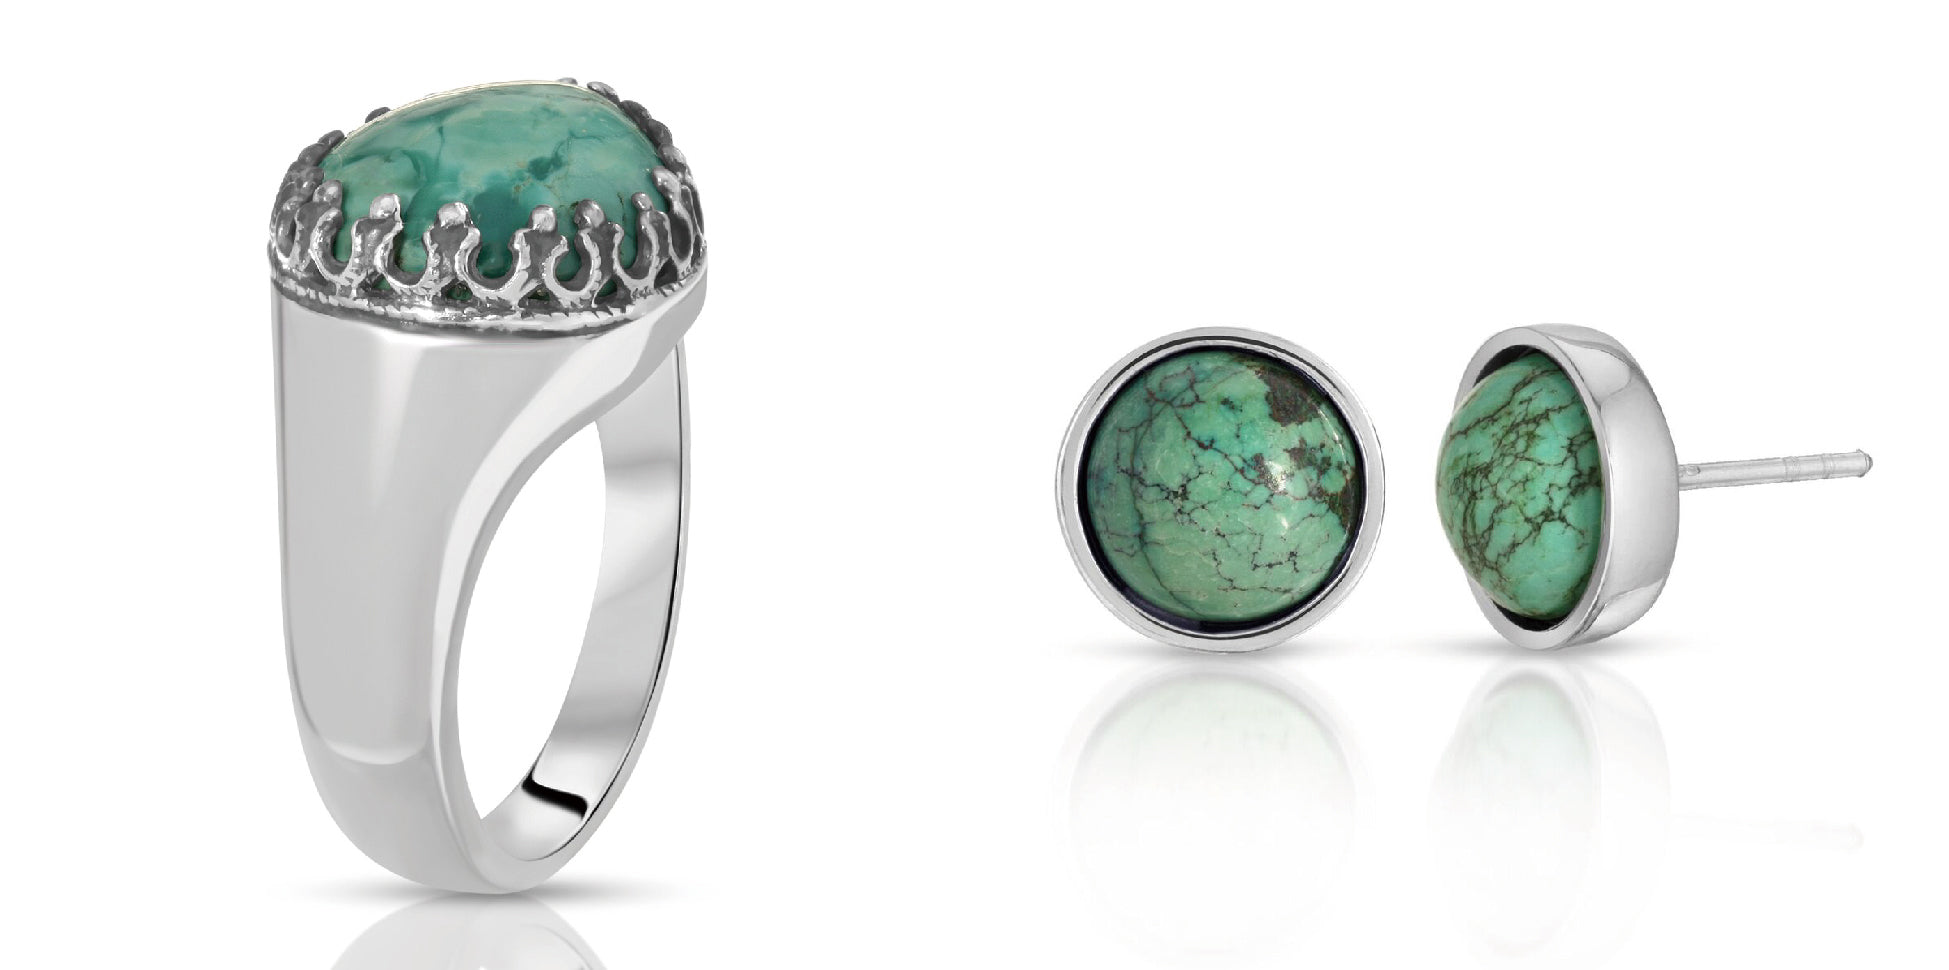 The W Brothers turquoise teardrop ring & turquoise round-cut earrings bundle set, thewbros gemstone collection A Grade 925 sterling silver turquoise ring, AA Grade turquoise ring & earrings bundle set deal thewbrothers gemstone jewelry set collection